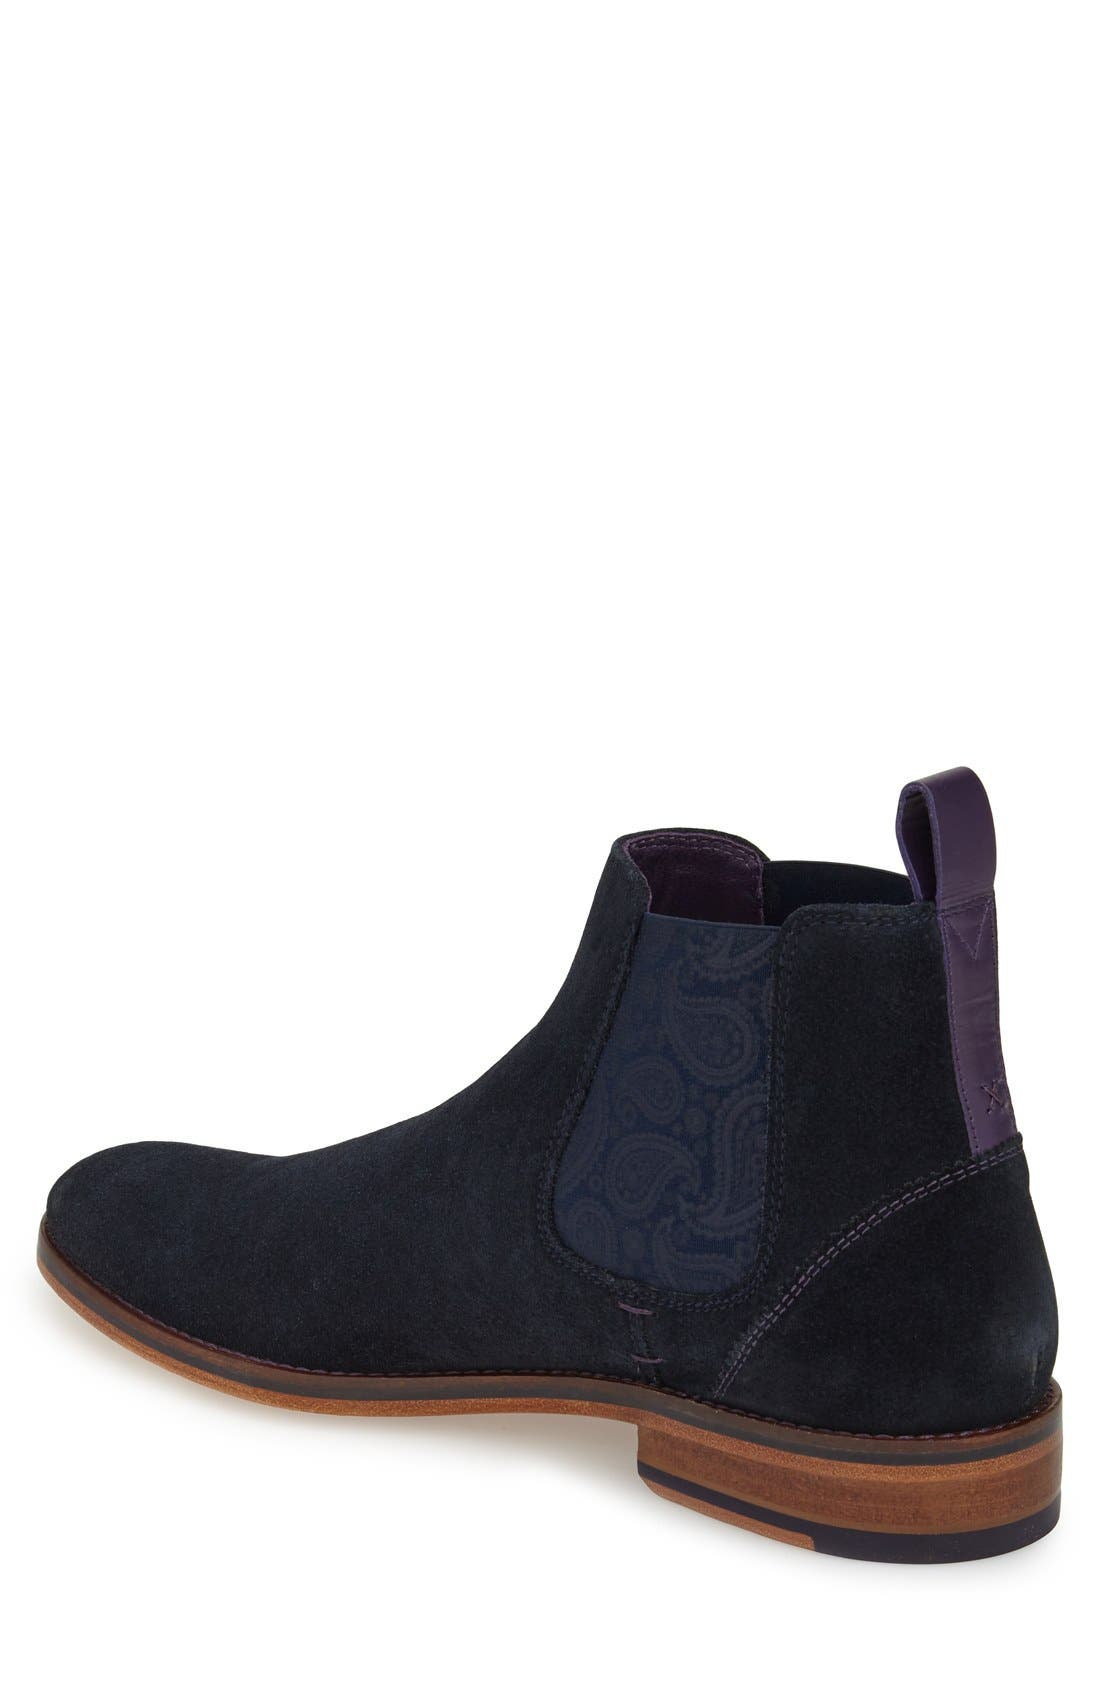 'Camroon 4' Chelsea Boot,                             Alternate thumbnail 18, color,